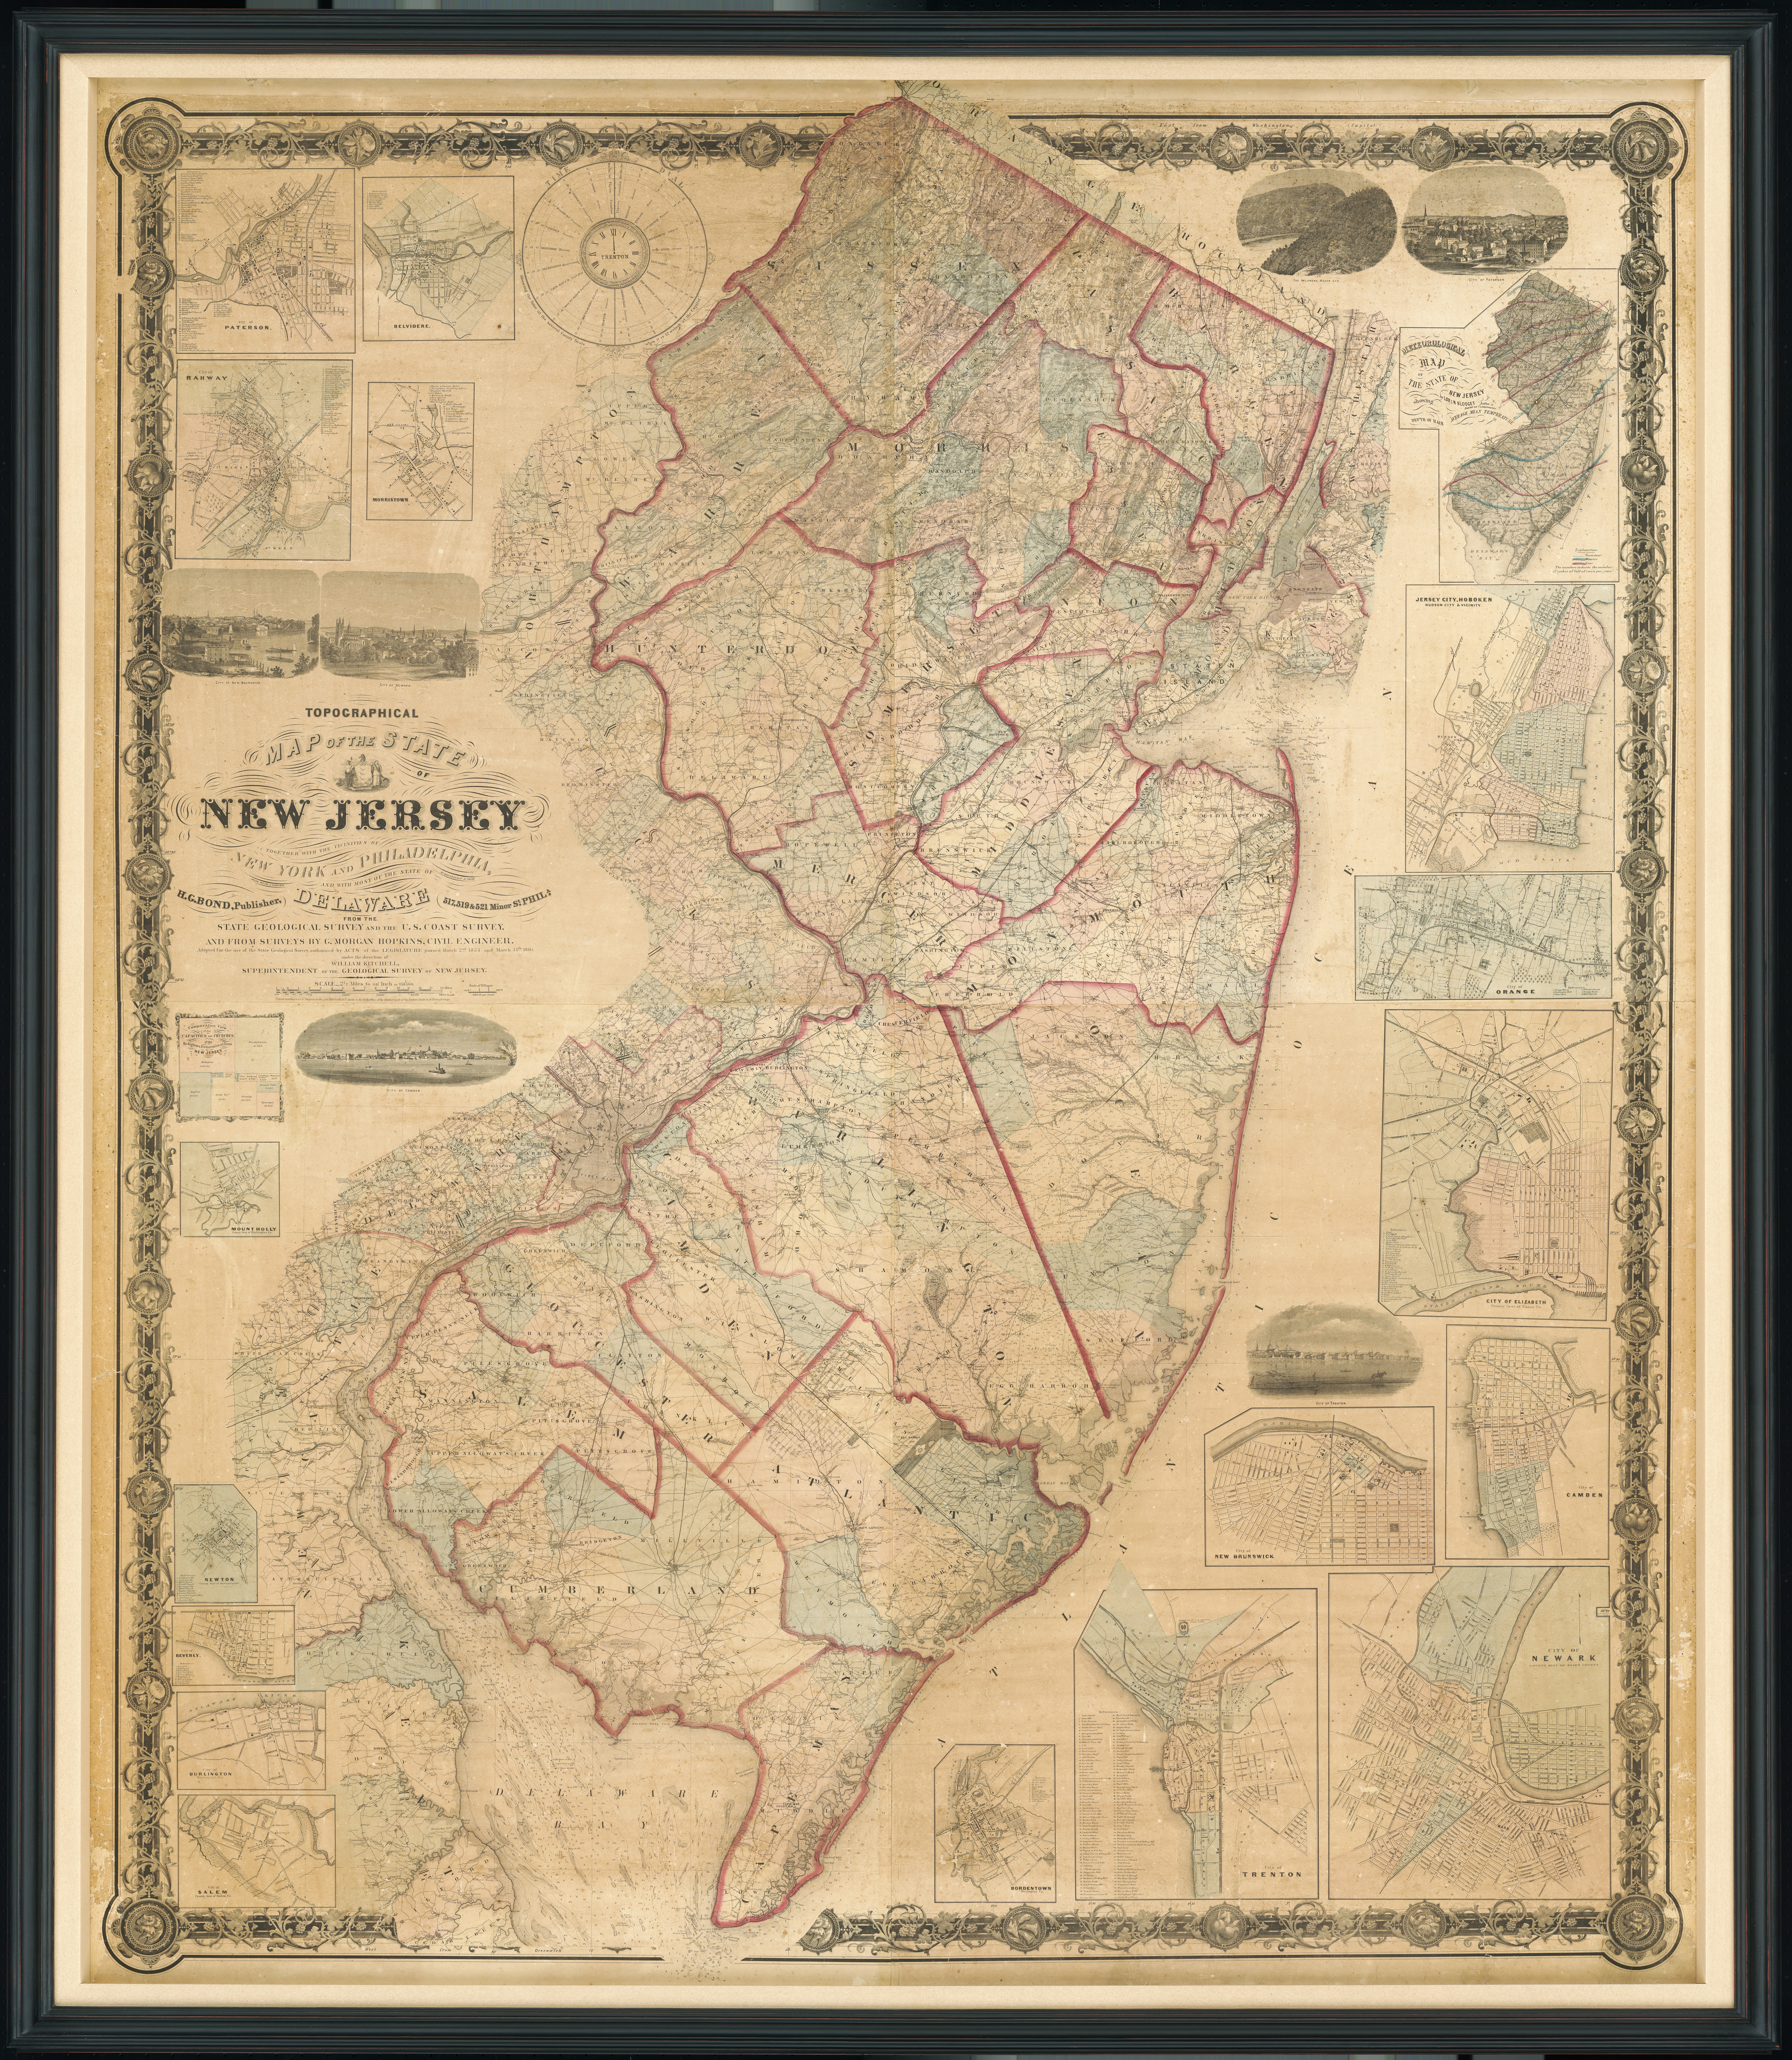 1860 New Jersey Topographical Map